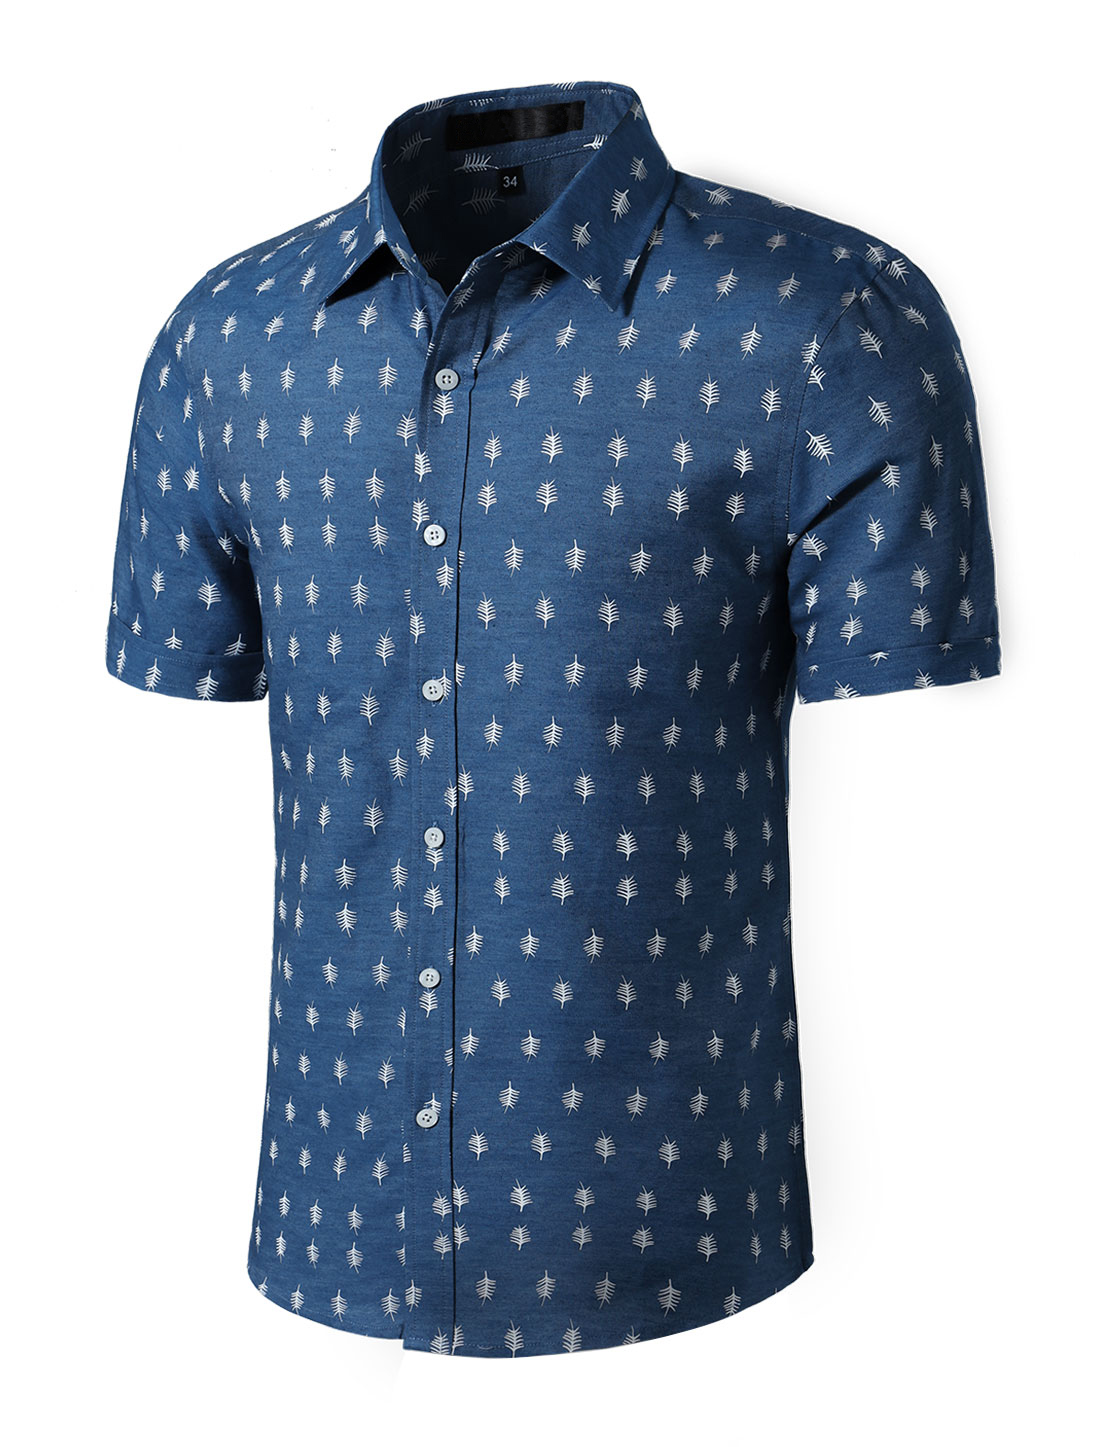 Men Short Sleeves Button Closed Leaves Prints Cotton Shirt Denim Blue S